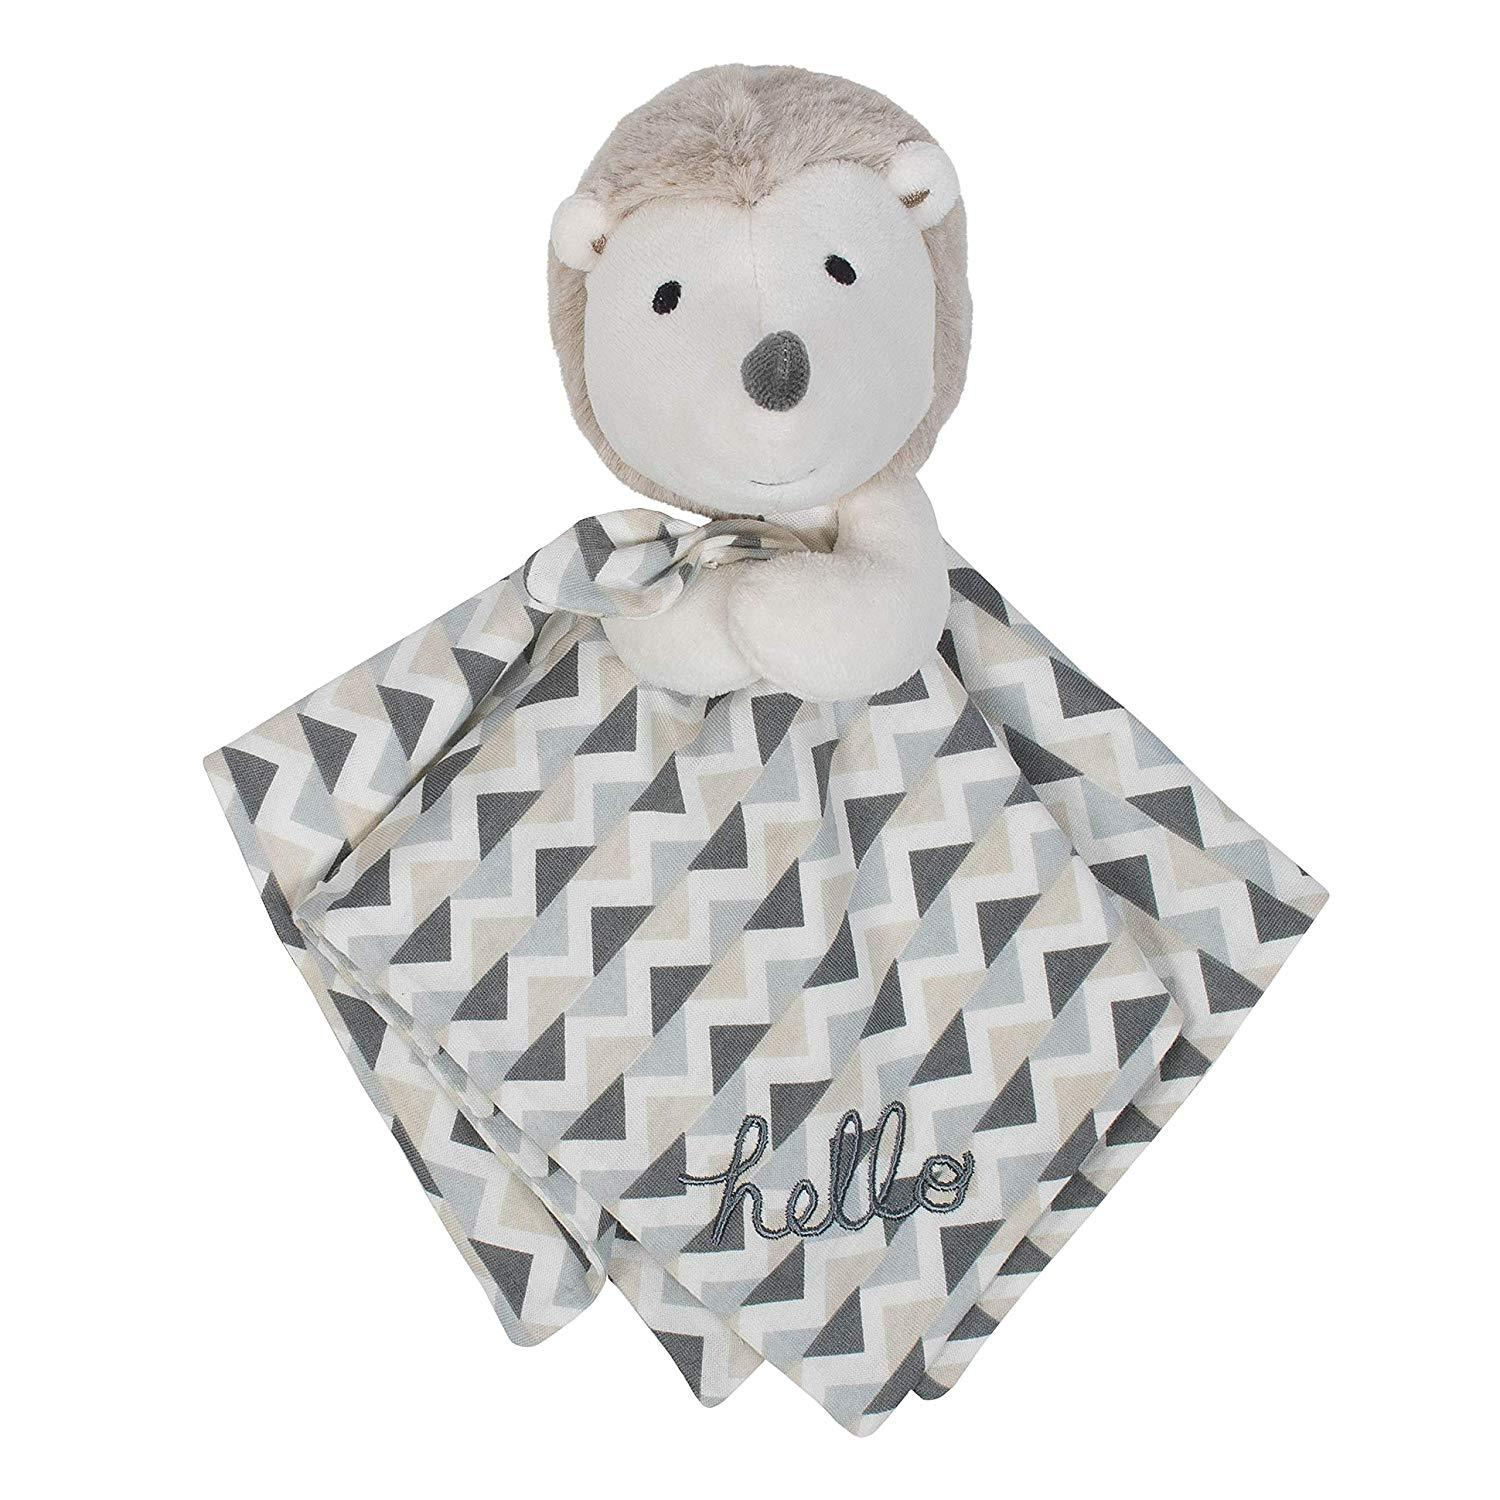 1-Pack Neutral Hedgehog Organic Security Blanket-Gerber Childrenswear